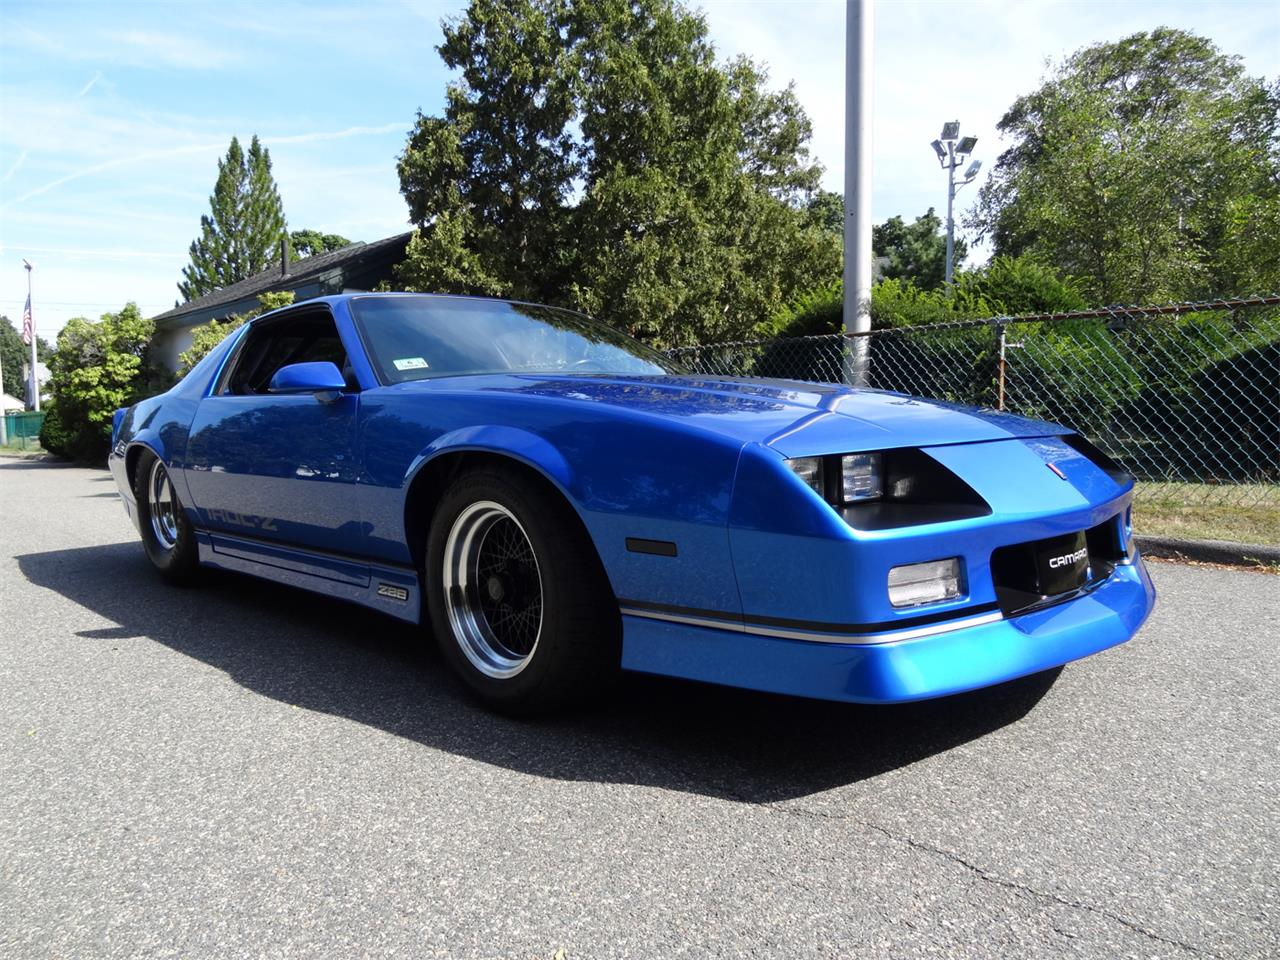 Large Picture of '83 Chevrolet Camaro IROC Z28 Offered by a Private Seller - QUEA